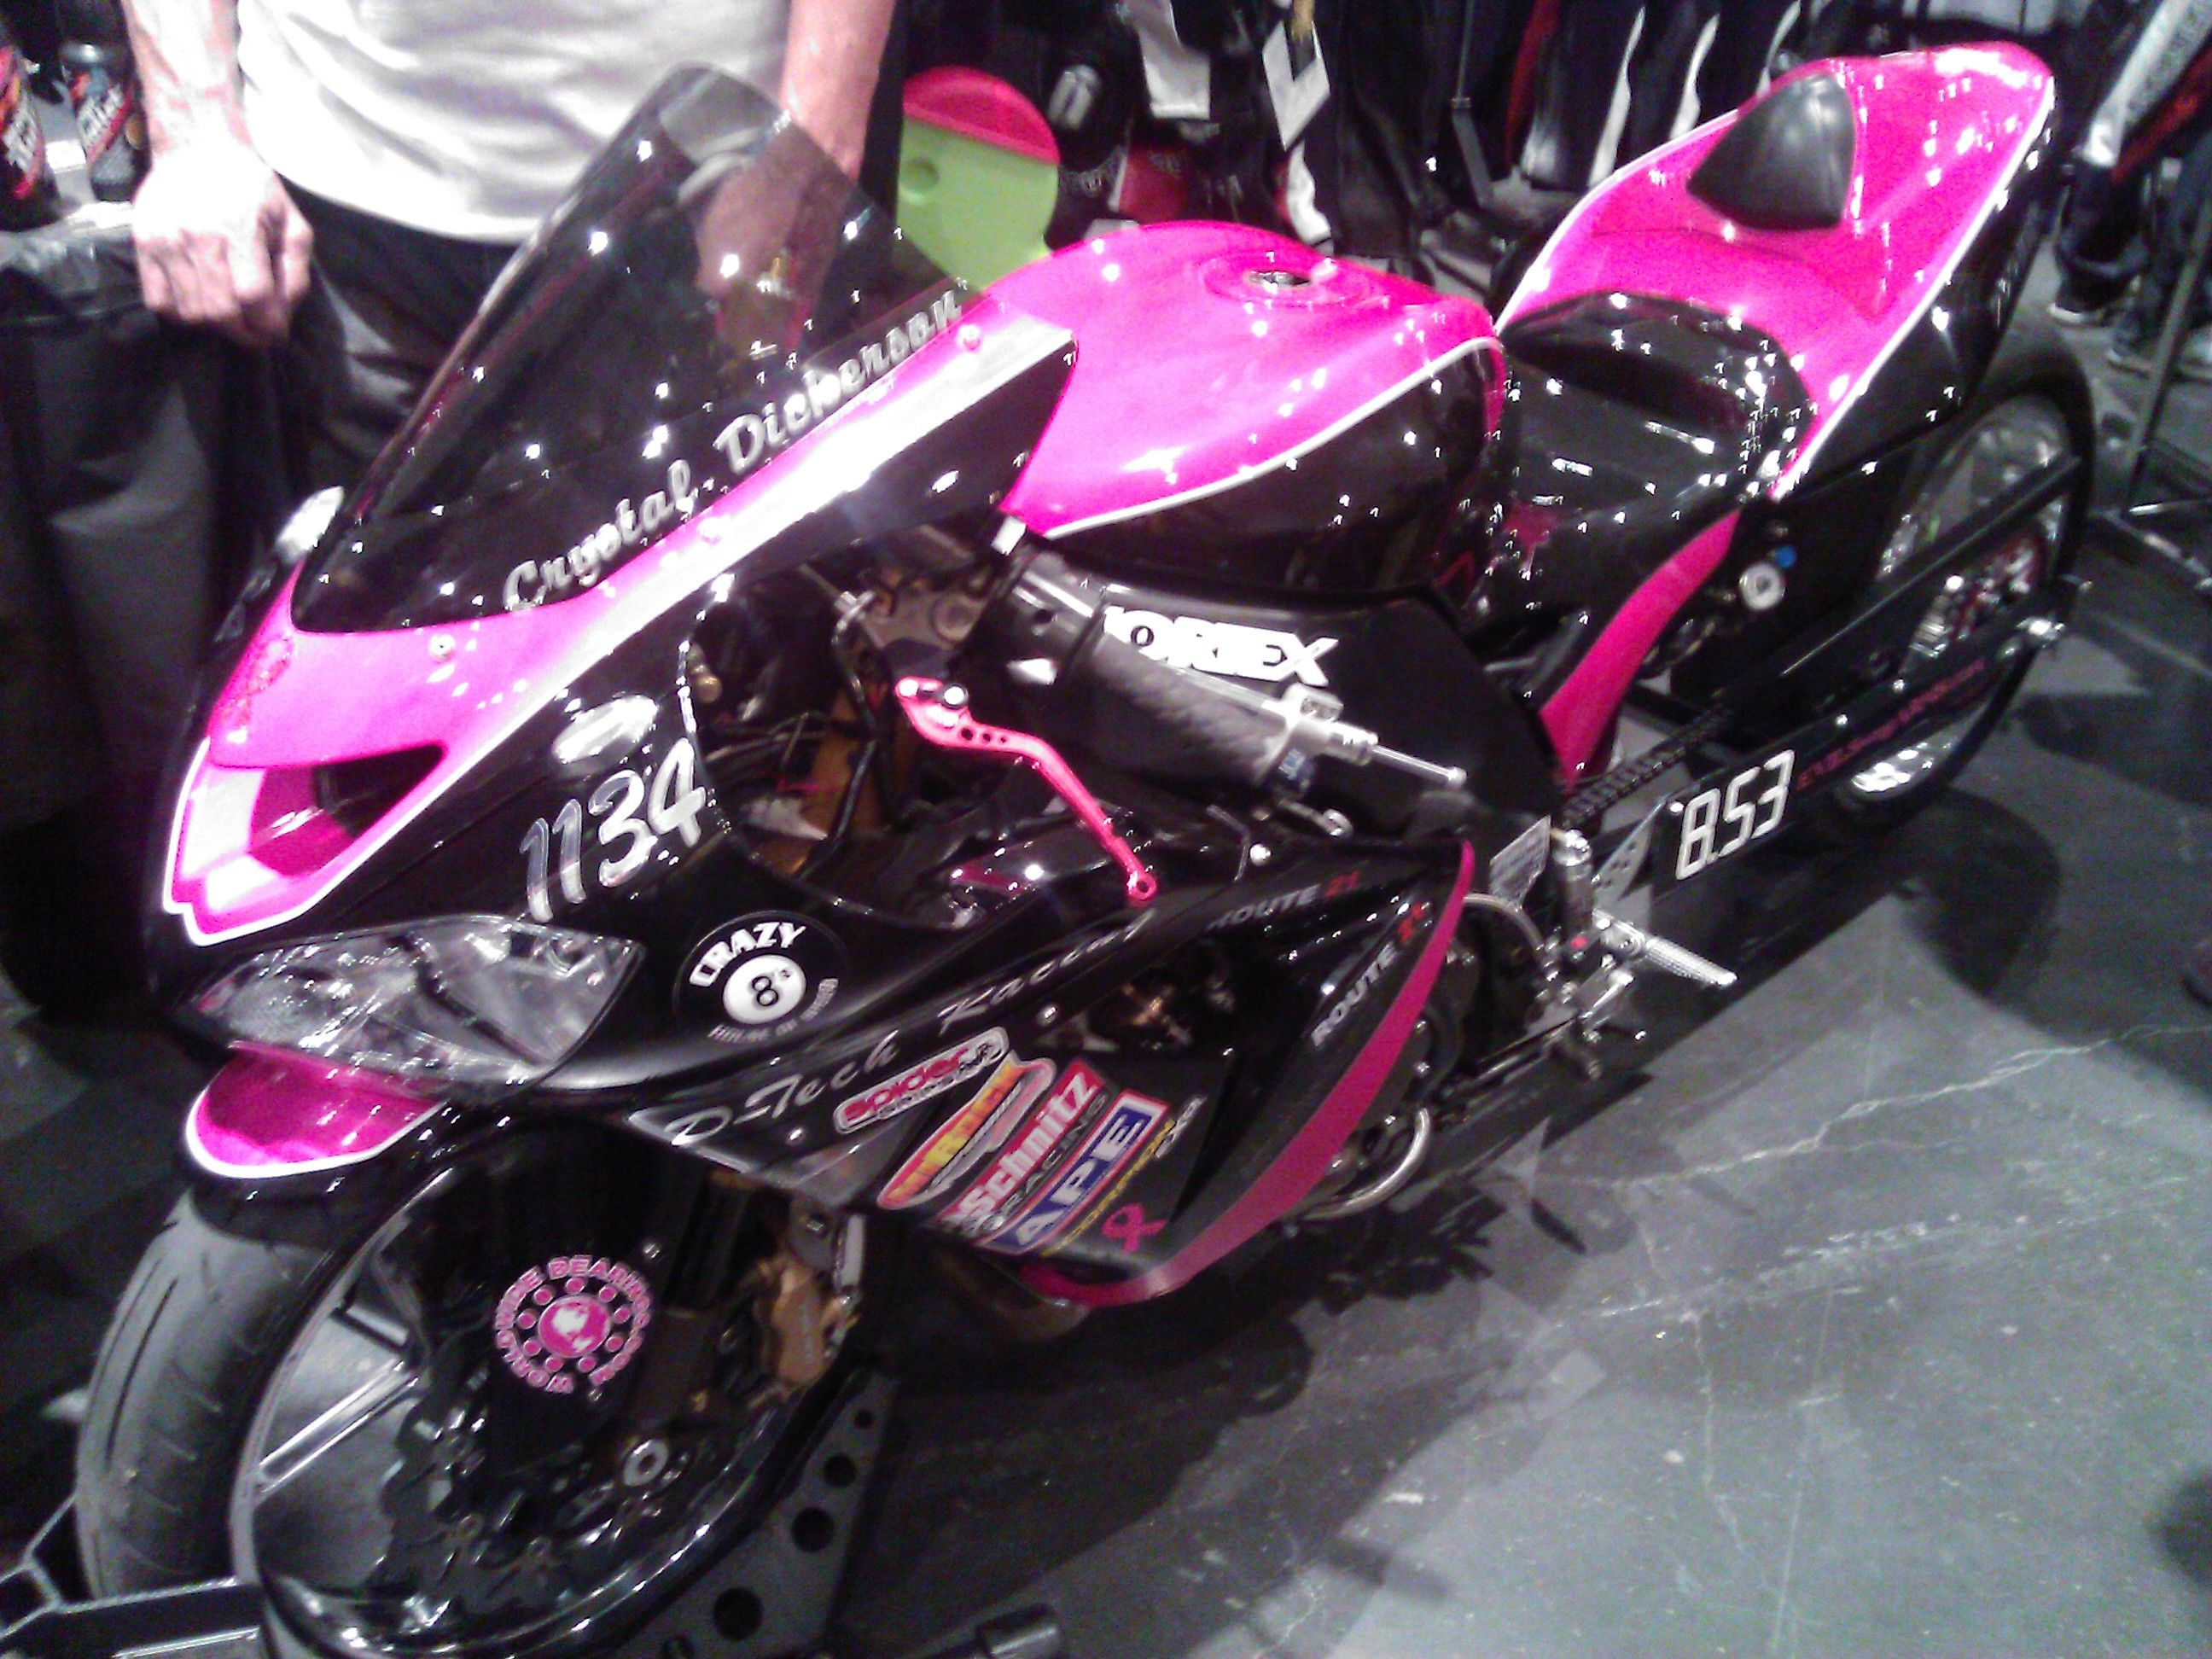 Beautiful Motorcycle Drag Racing Bike Used By Crystal Dickerson, Professional  Motorcycle Drag Racer. #NYMotorcycleShows